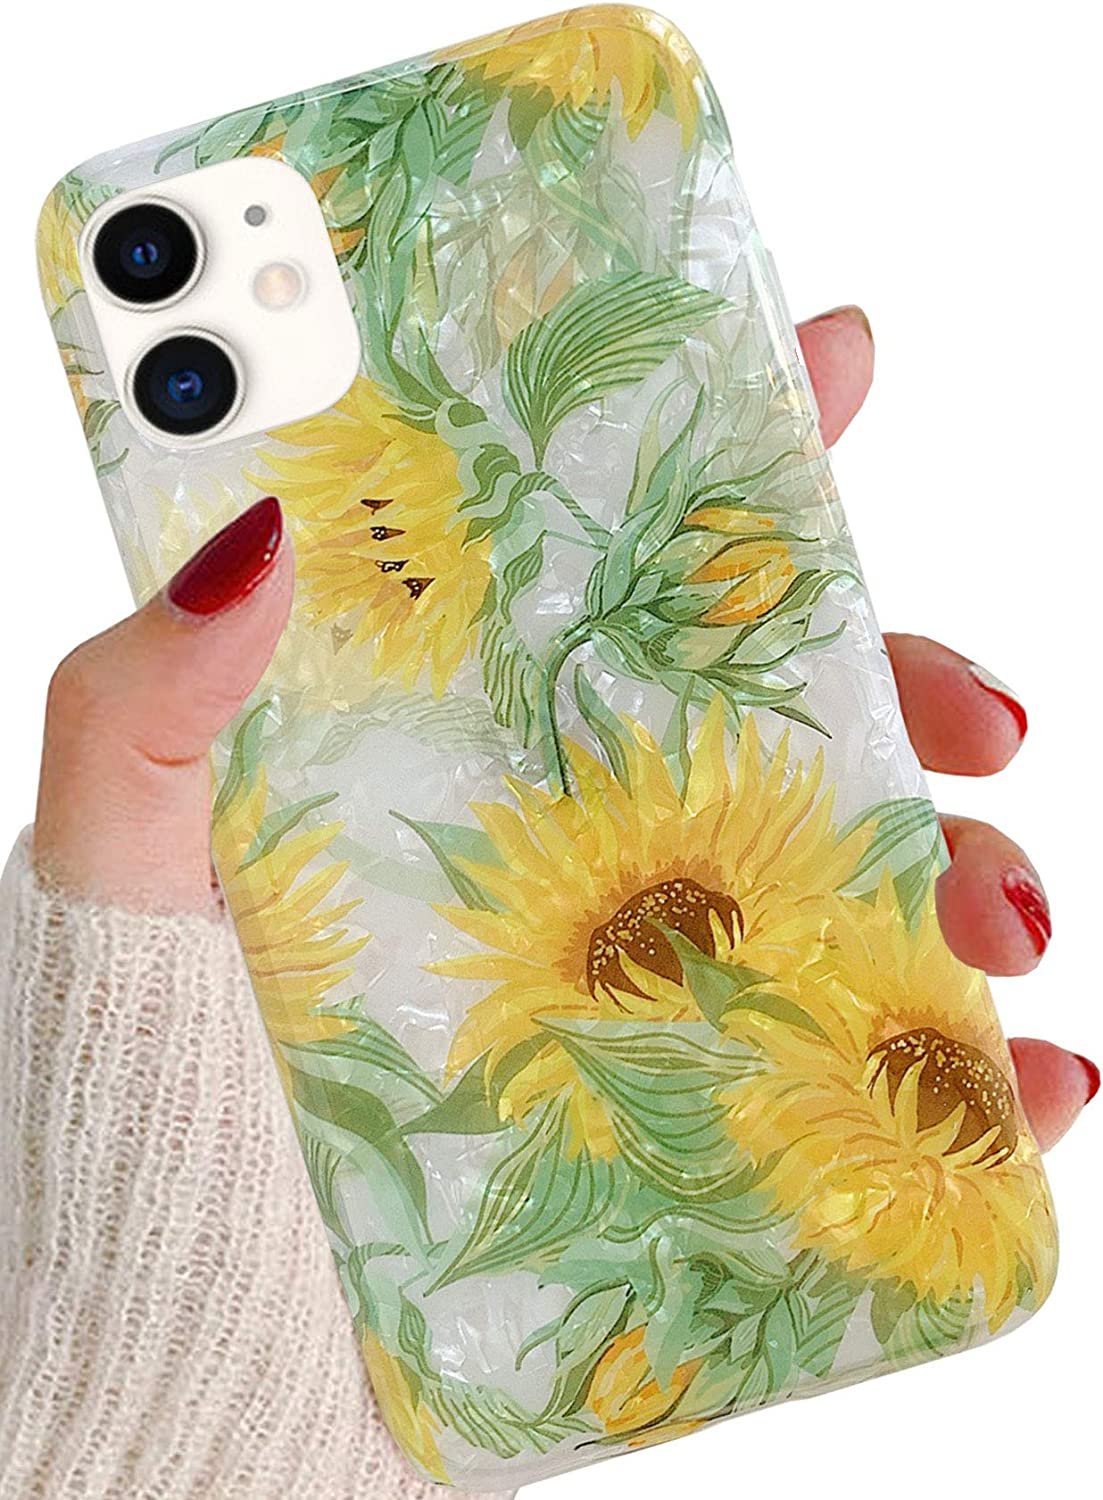 J.west iPhone 11 Case 6.1-inch,Luxury Sparkle Translucent Clear Floral Sunflowers Design Print Soft Case for Girls Women Shockproof Slim Silicone TPU Protective Phone Case Cover for iPhone 11 Flower